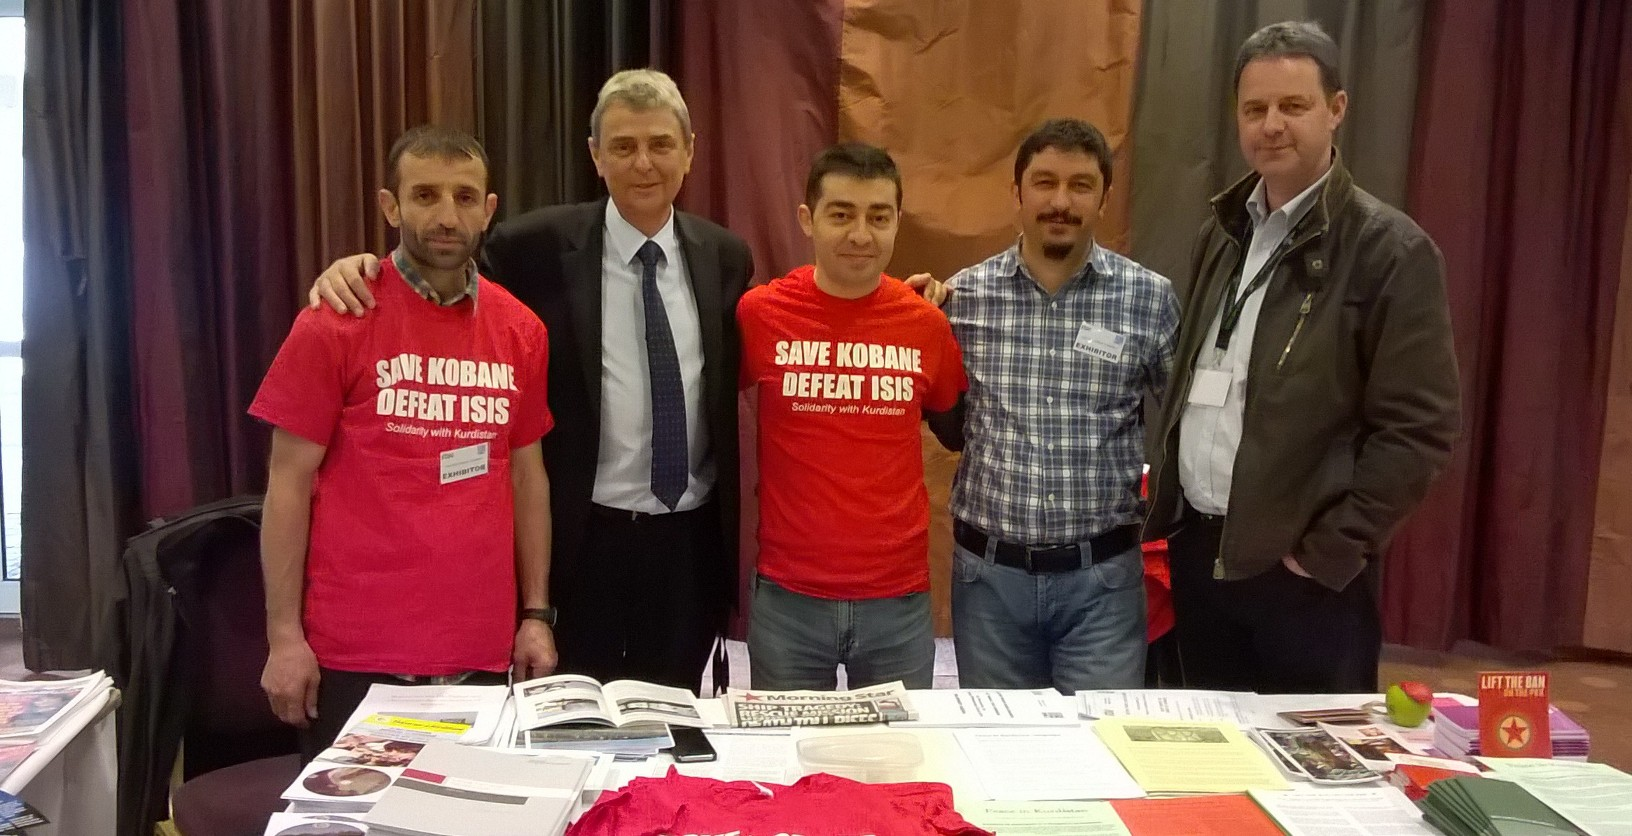 Kurdish activists with Stephen Smellie and UNISON general secretary Dave Parentis